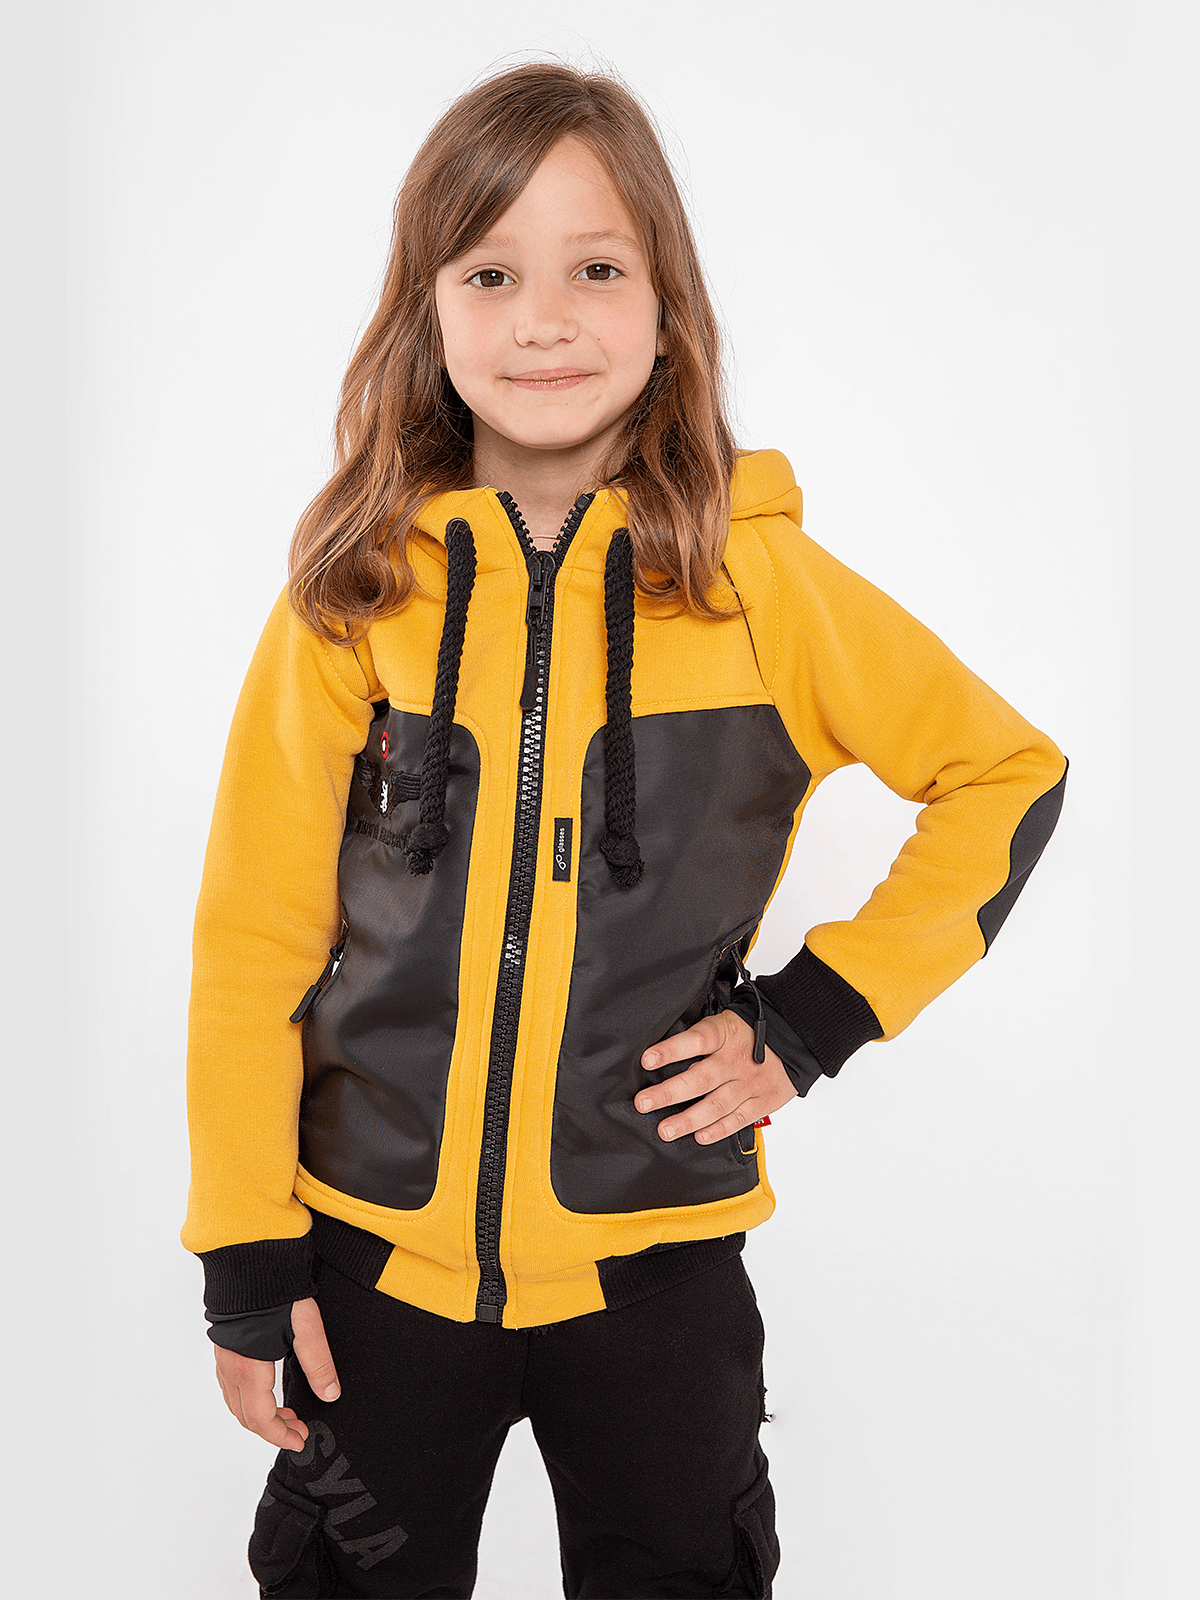 Kids Hoodie Syla. Color yellow.  Material of the hoodie – three-cord thread fabric: 77% cotton, 23% polyester.